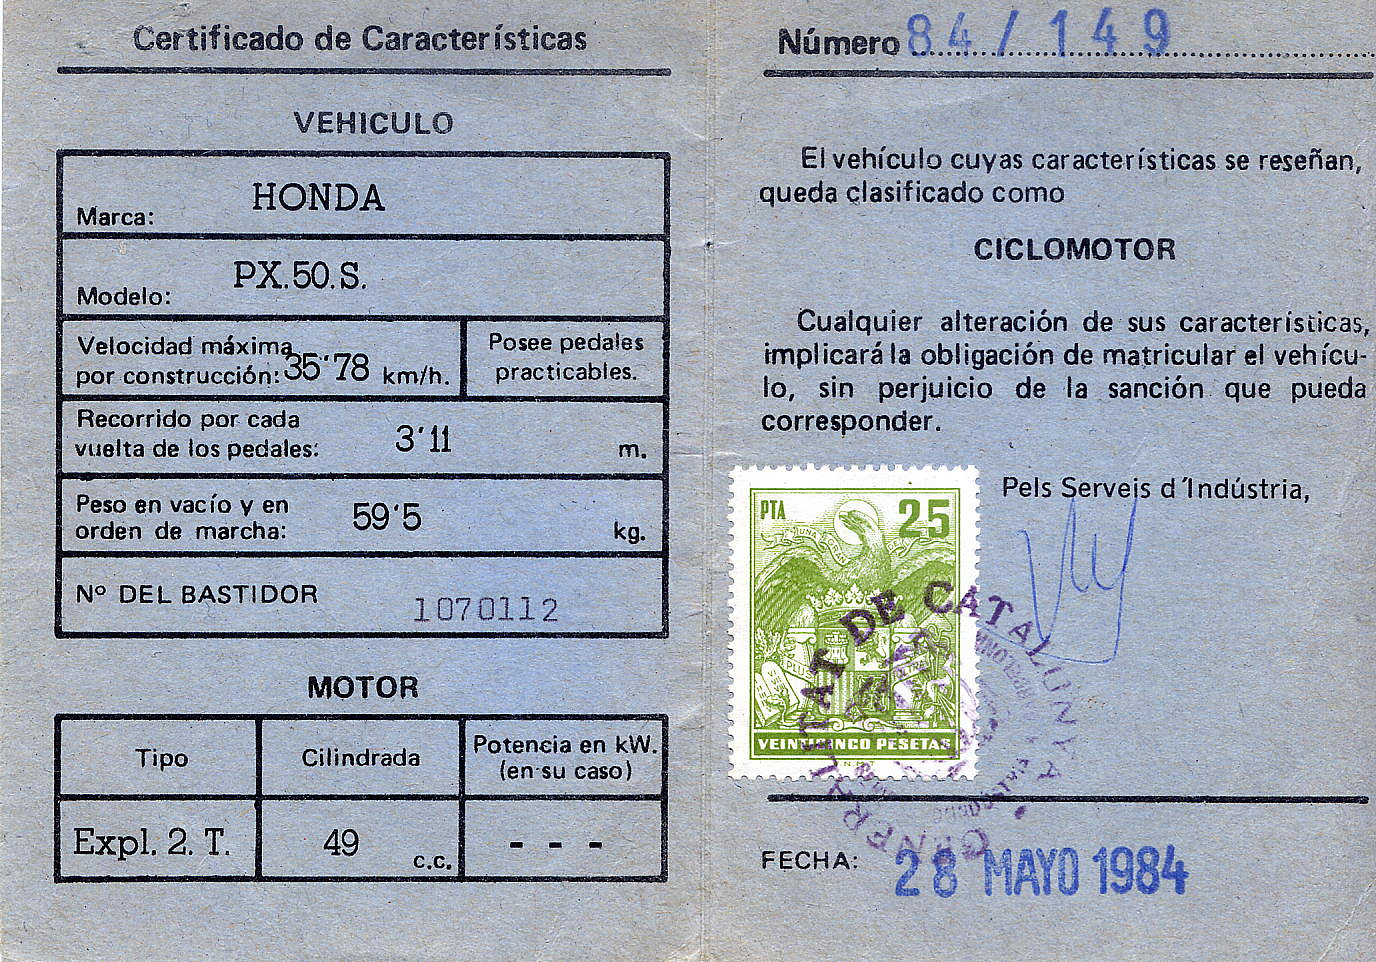 HONDA -  Mi Honda PX '84 - Página 2 1e0c1a6c04dace22d0a1c6d835ea3c2fo